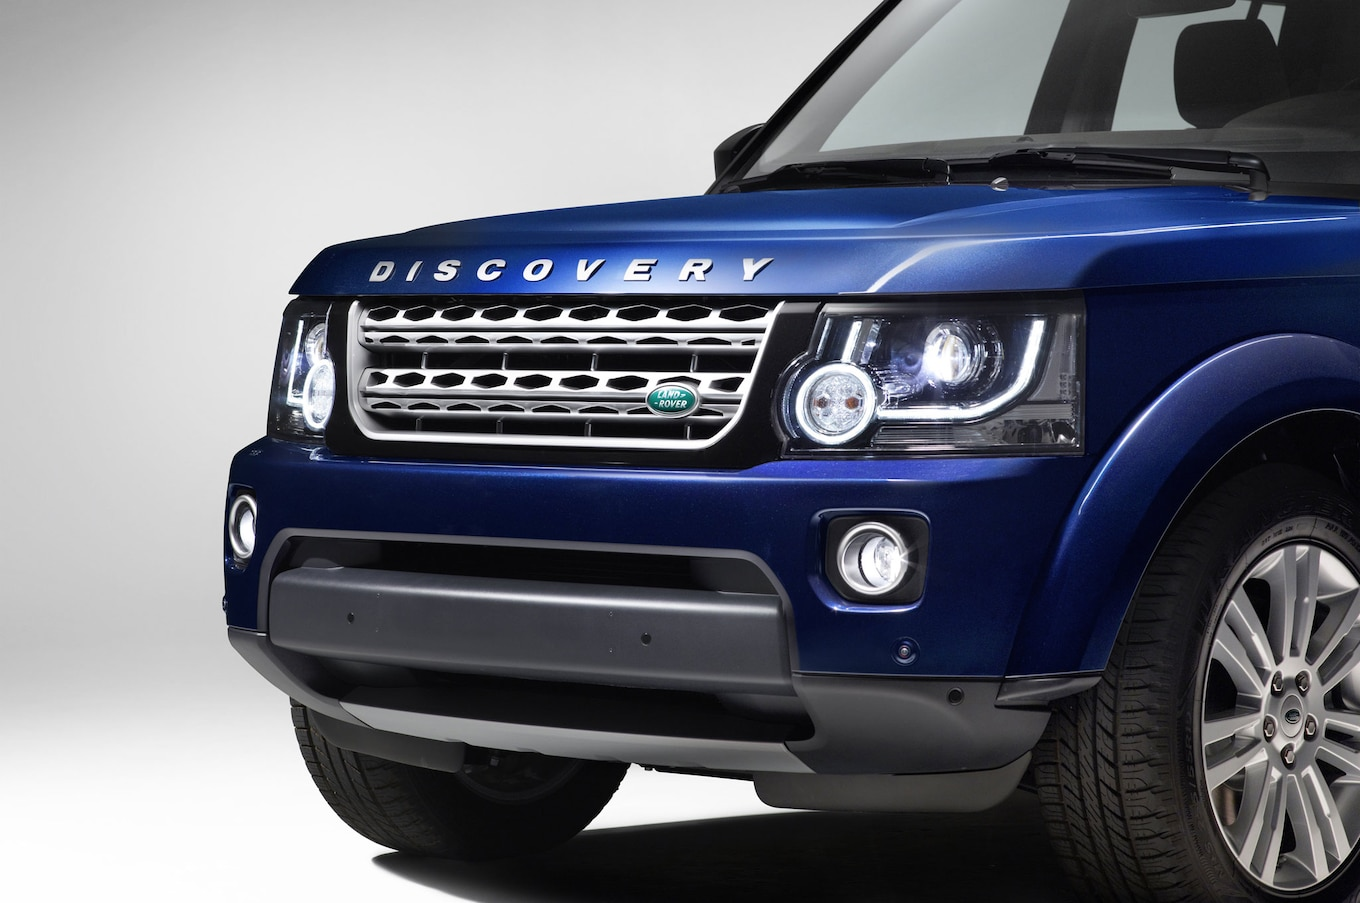 2014 Land Rover LR4 Drops 5 0L V 8 for Supercharged 3 0L V 6